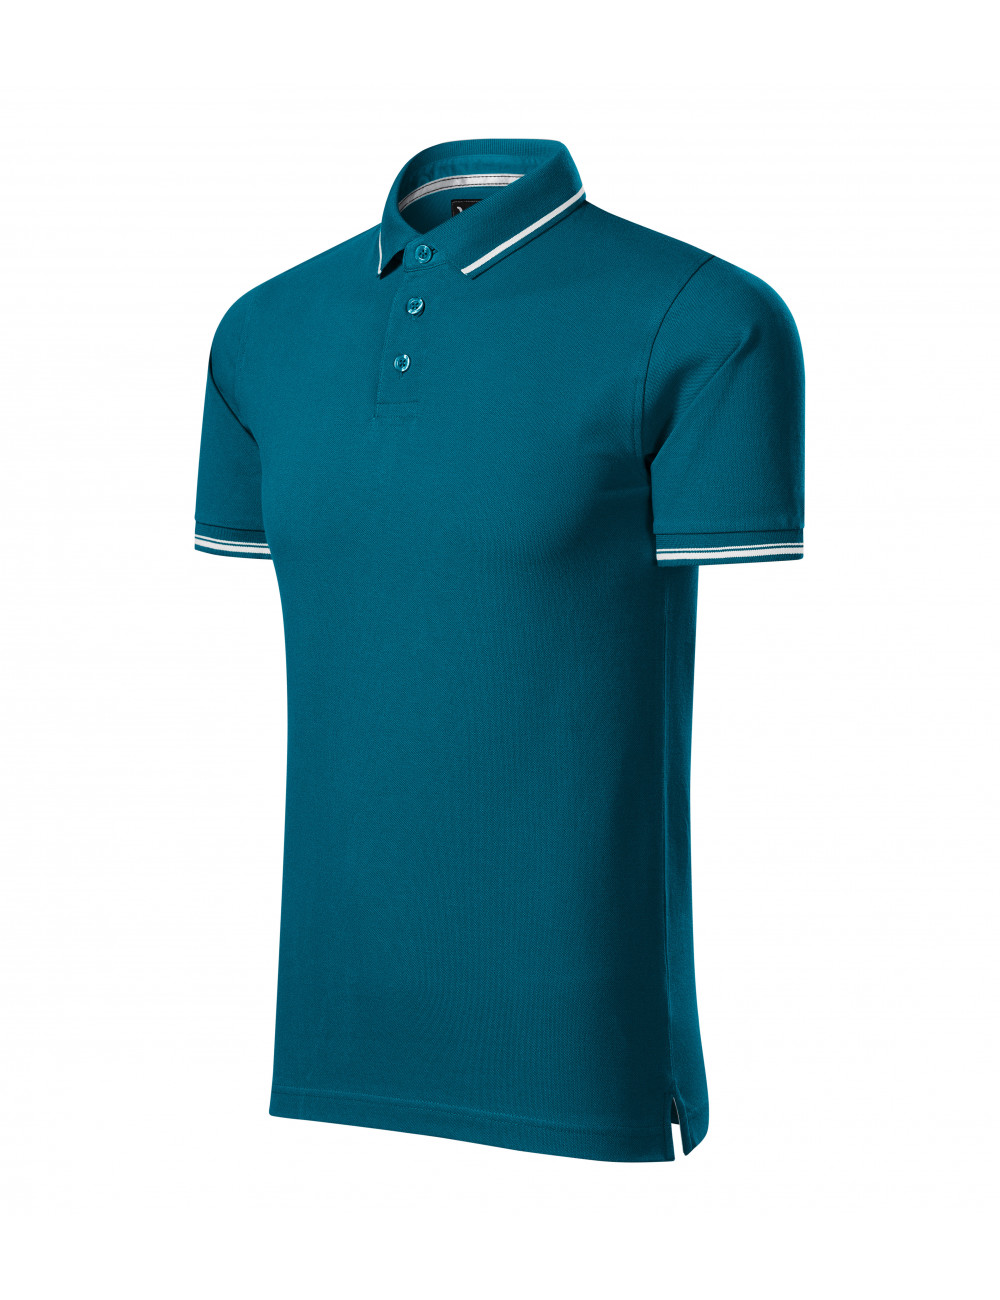 Adler MALFINIPREMIUM Koszulka polo męska Perfection plain 251 petrol blue